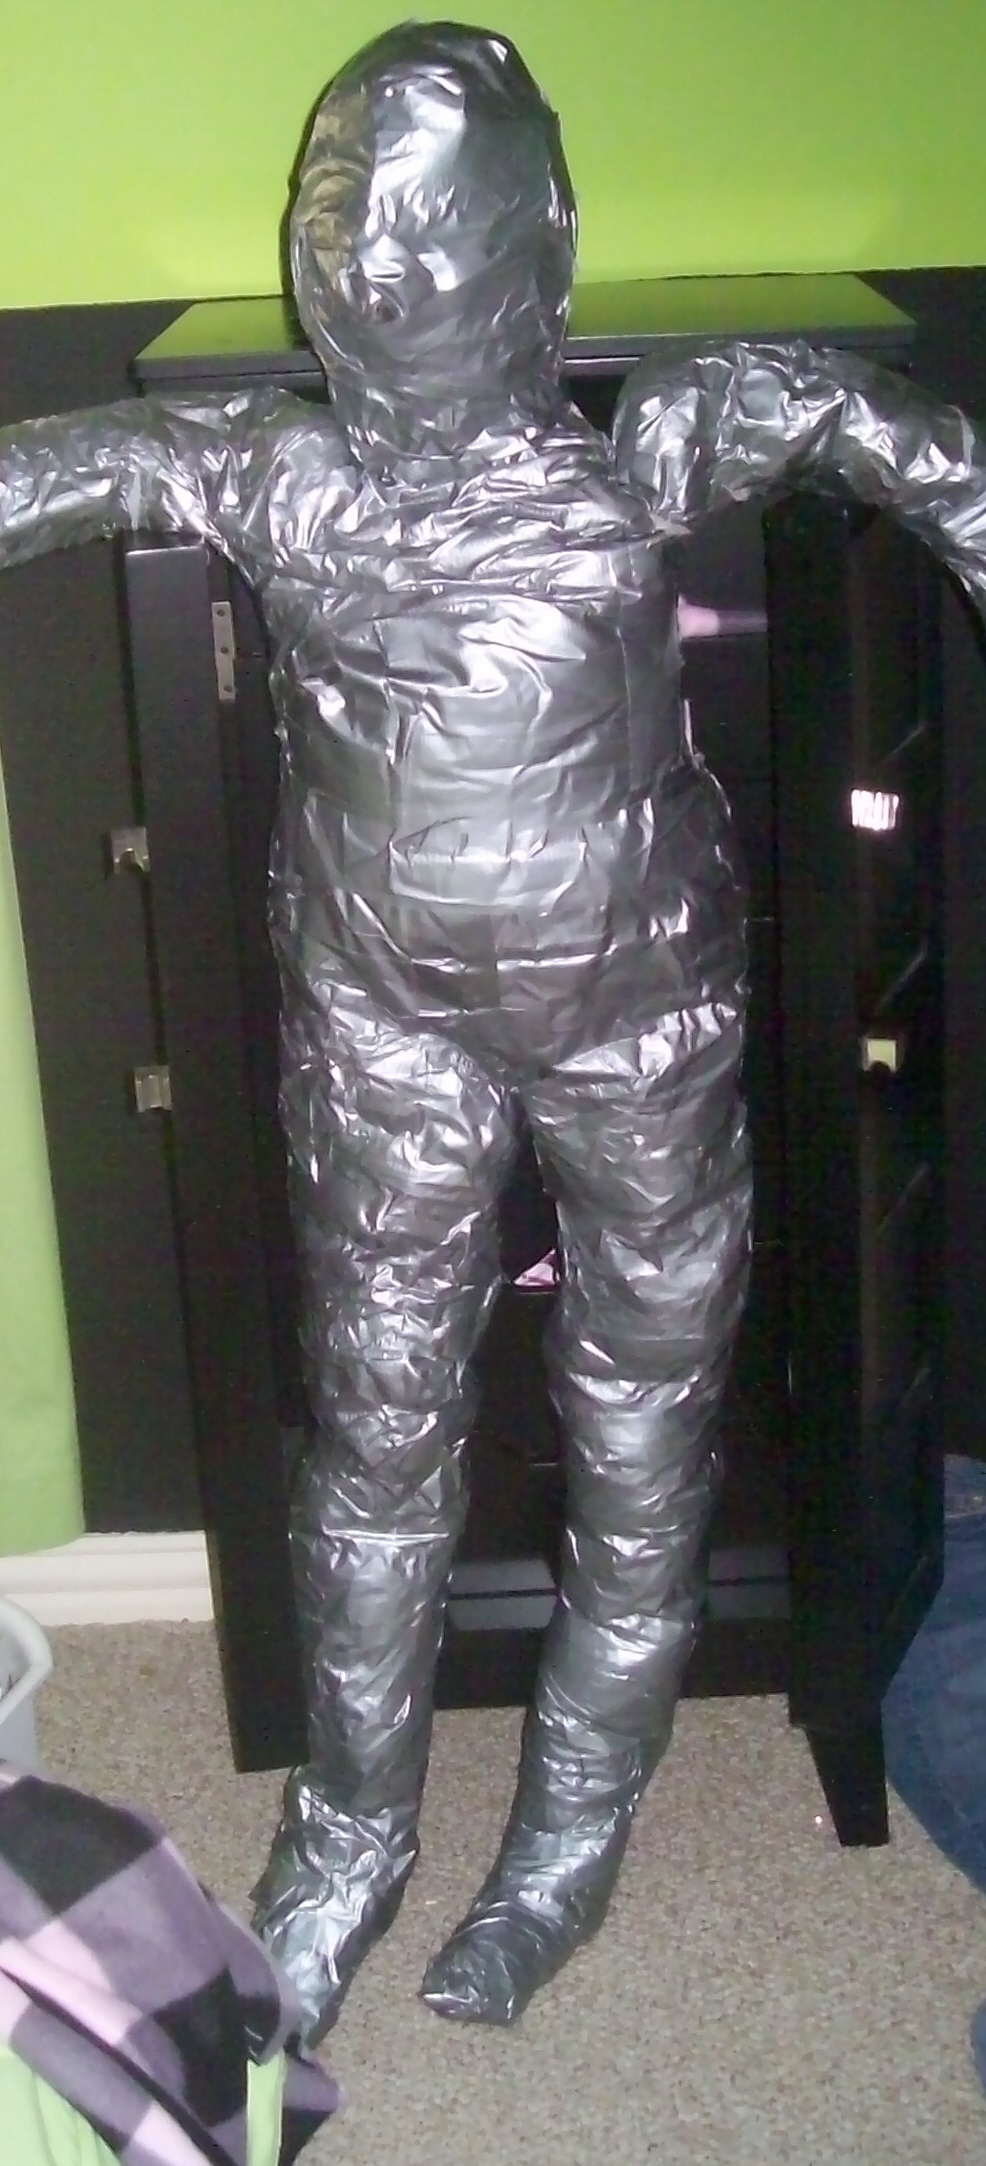 How to make a Duct-Tape Dummy